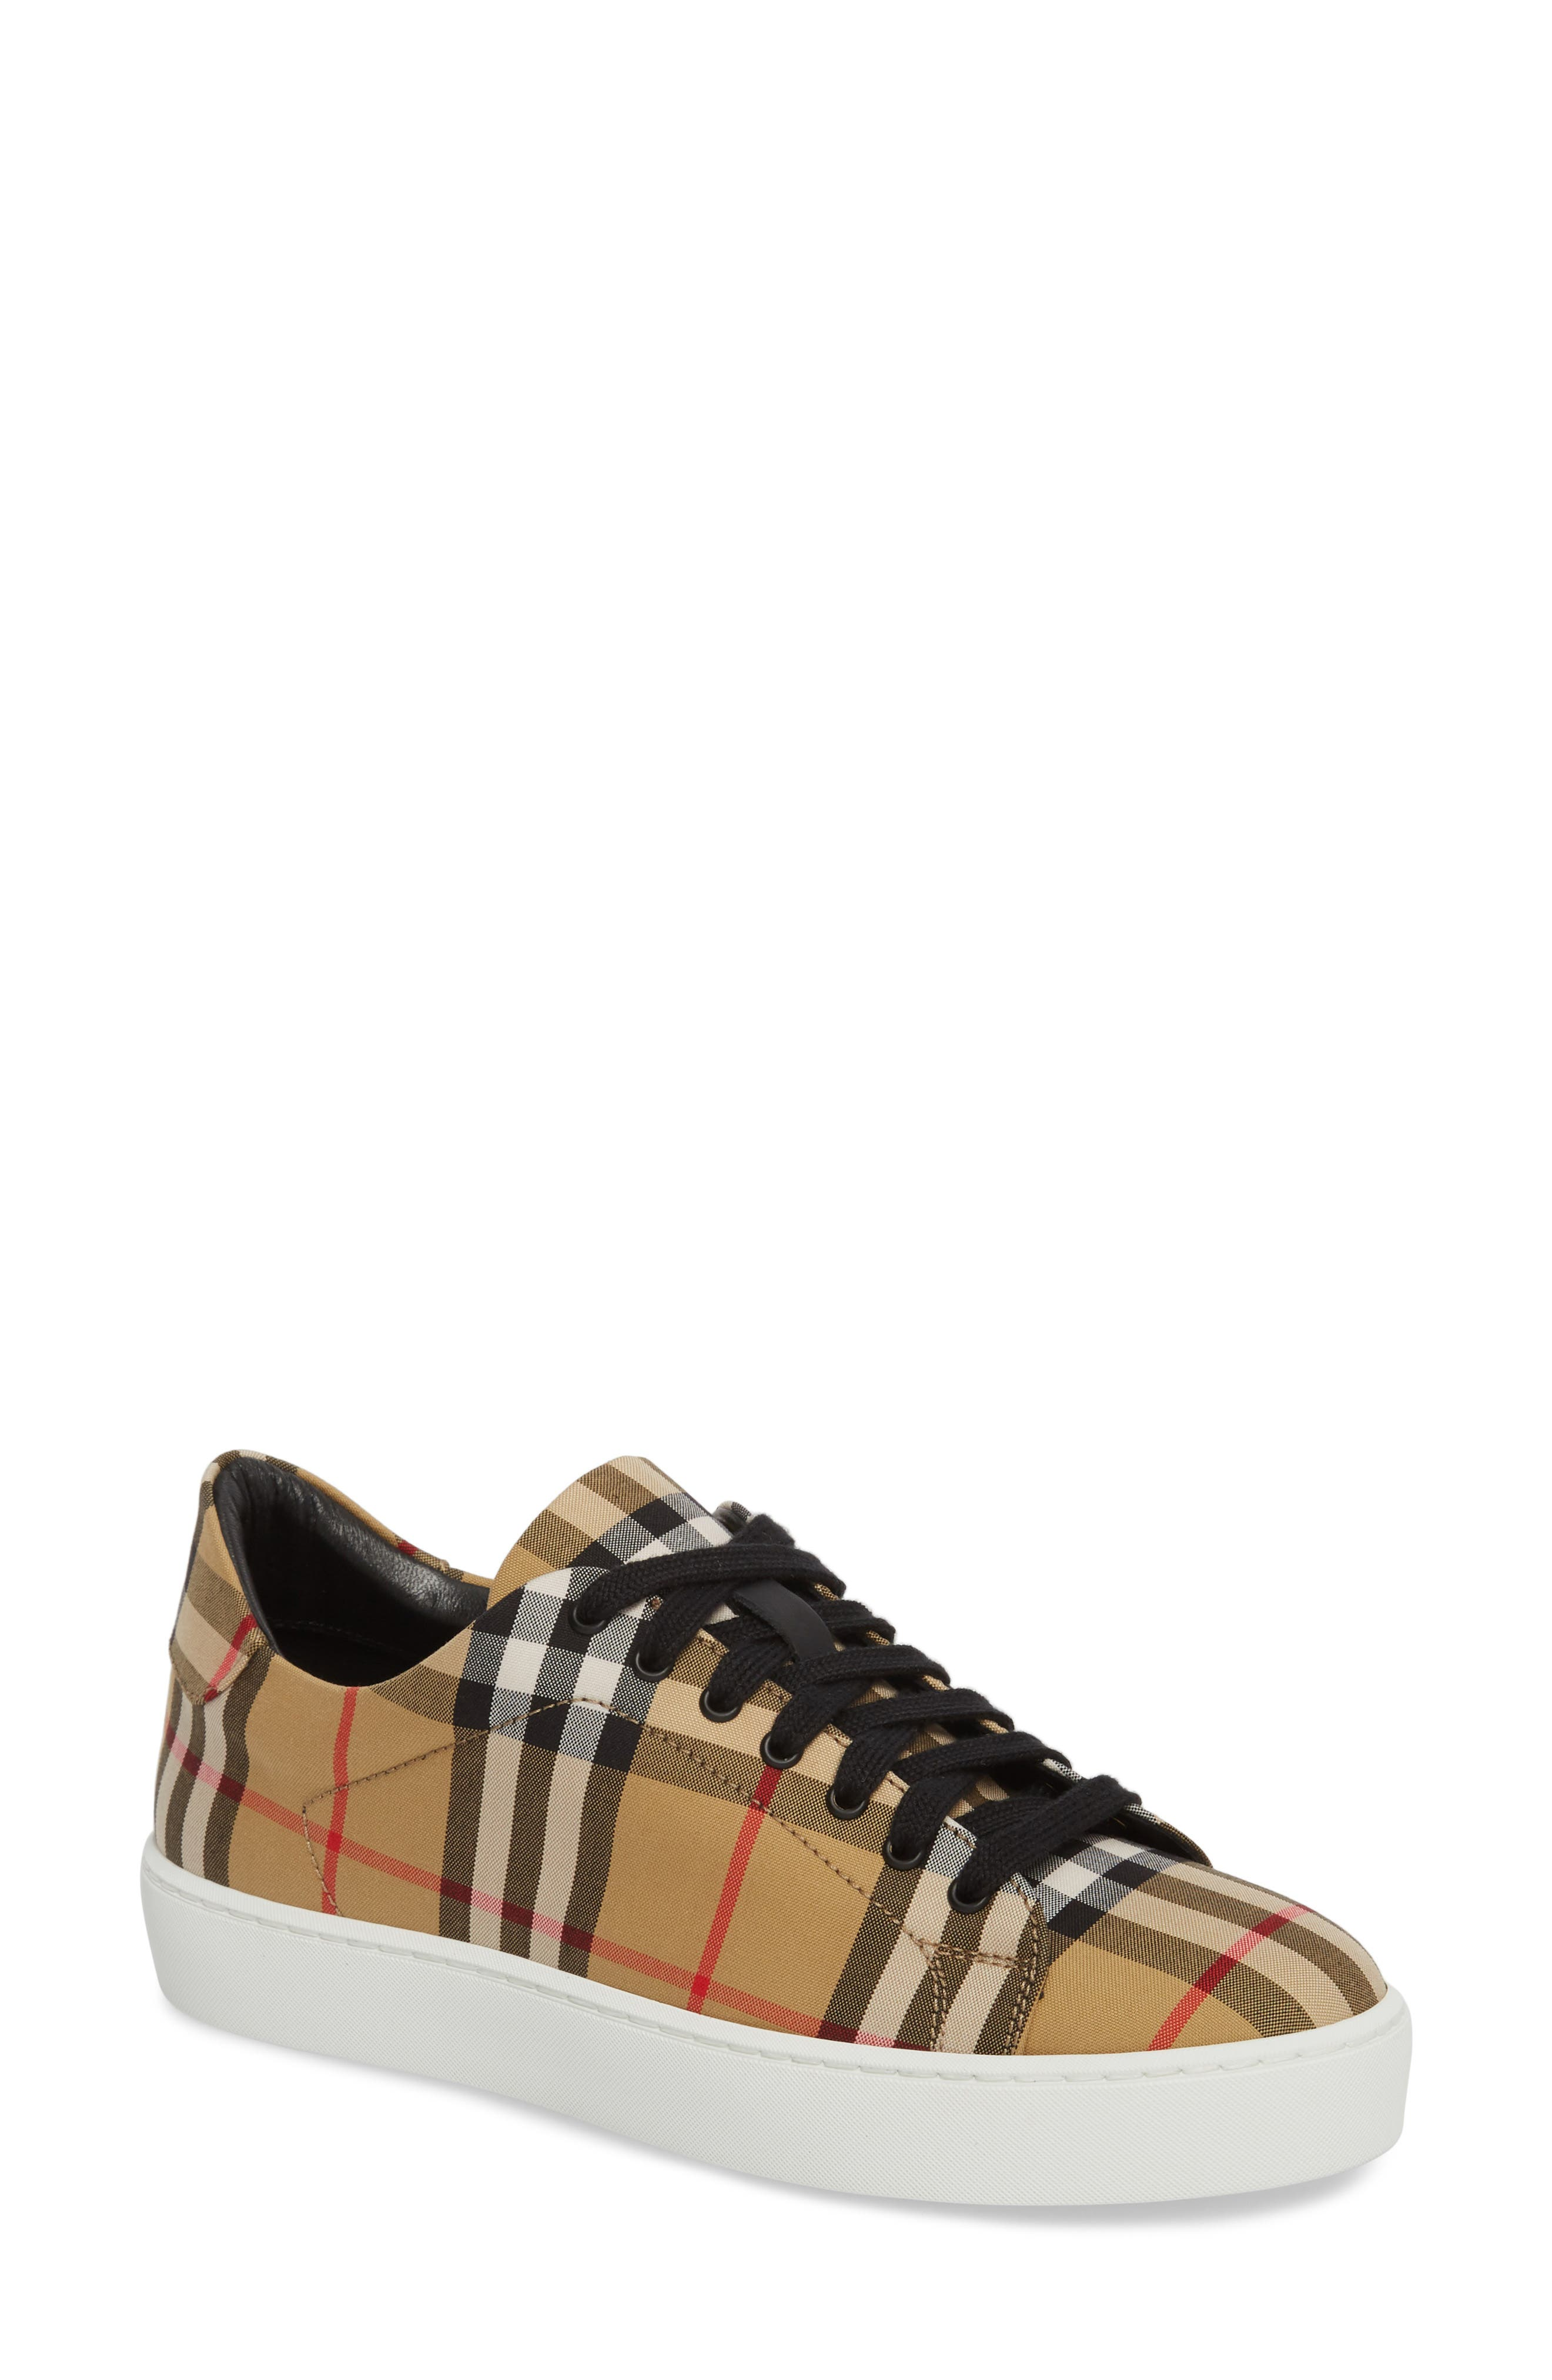 Burberry Westford Check Sneaker (Women)